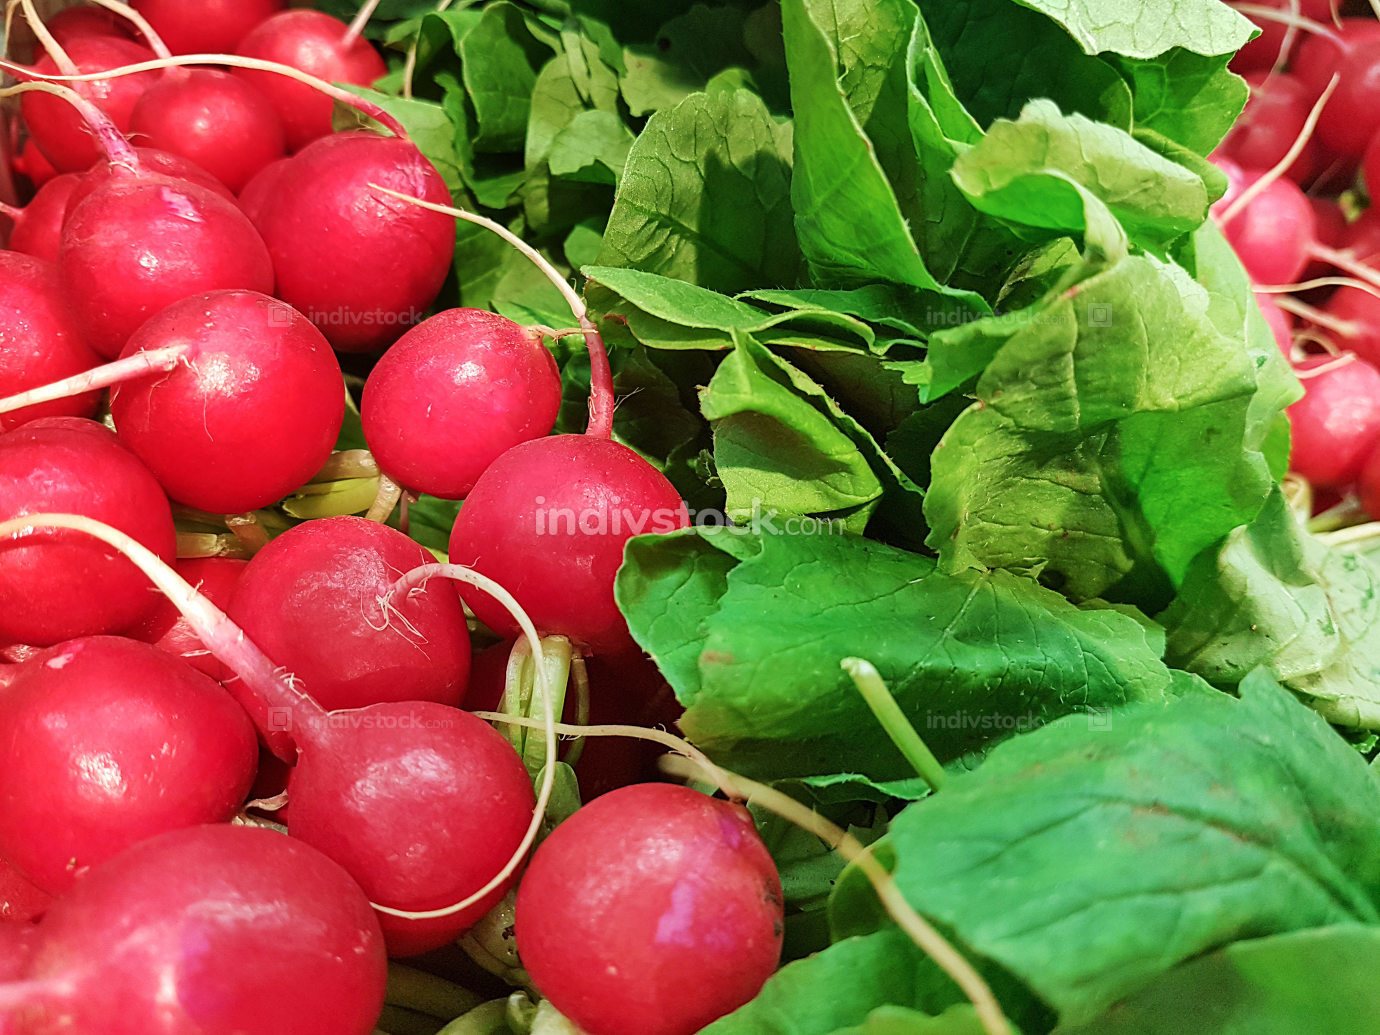 Bunches of fresh radishes